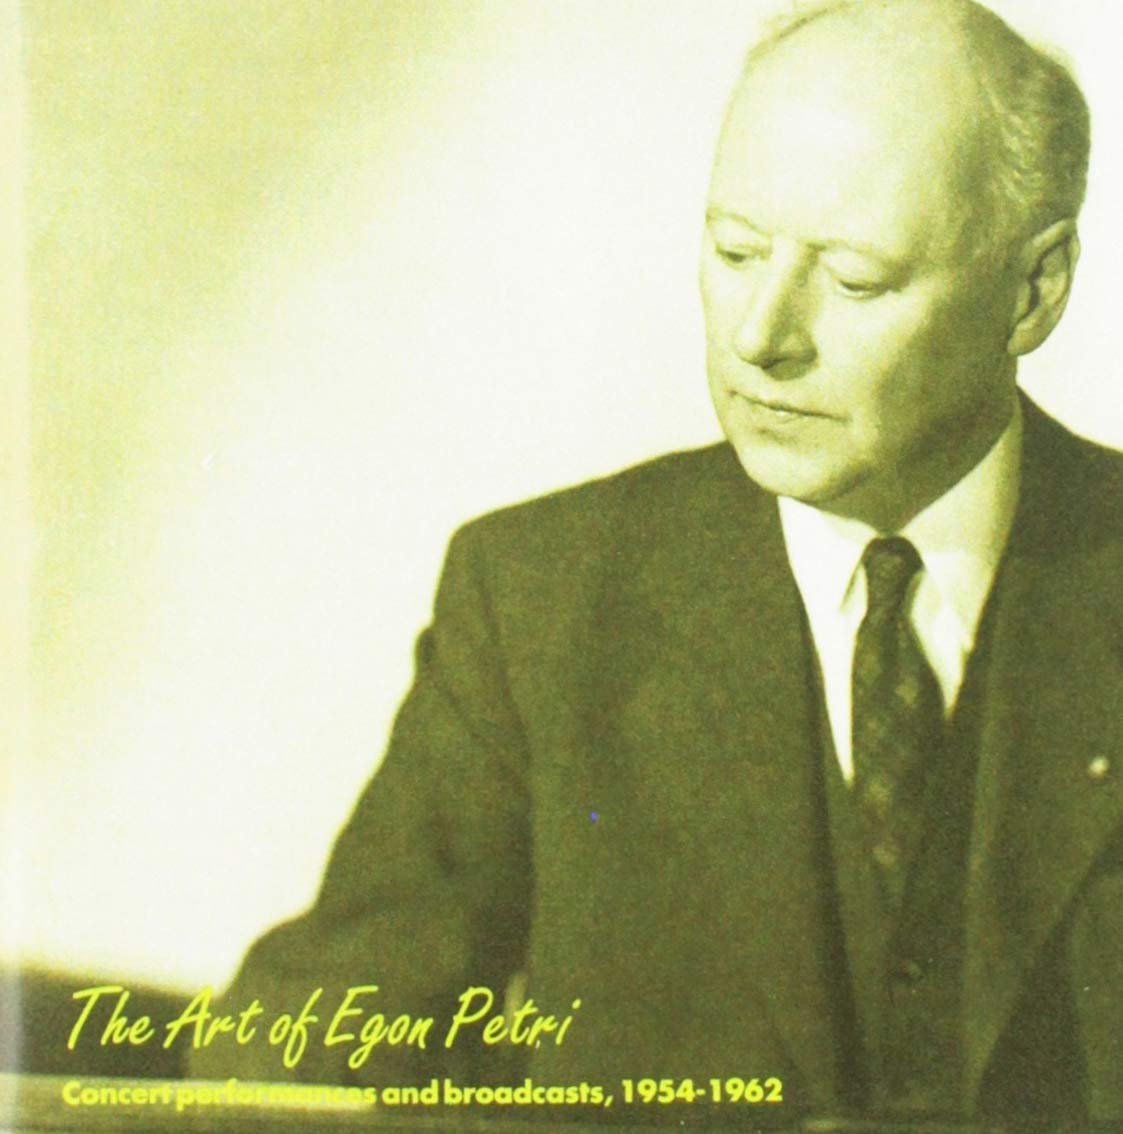 The Art of Egon Petri: Concert Performances and Broadcasts, 1954-1962